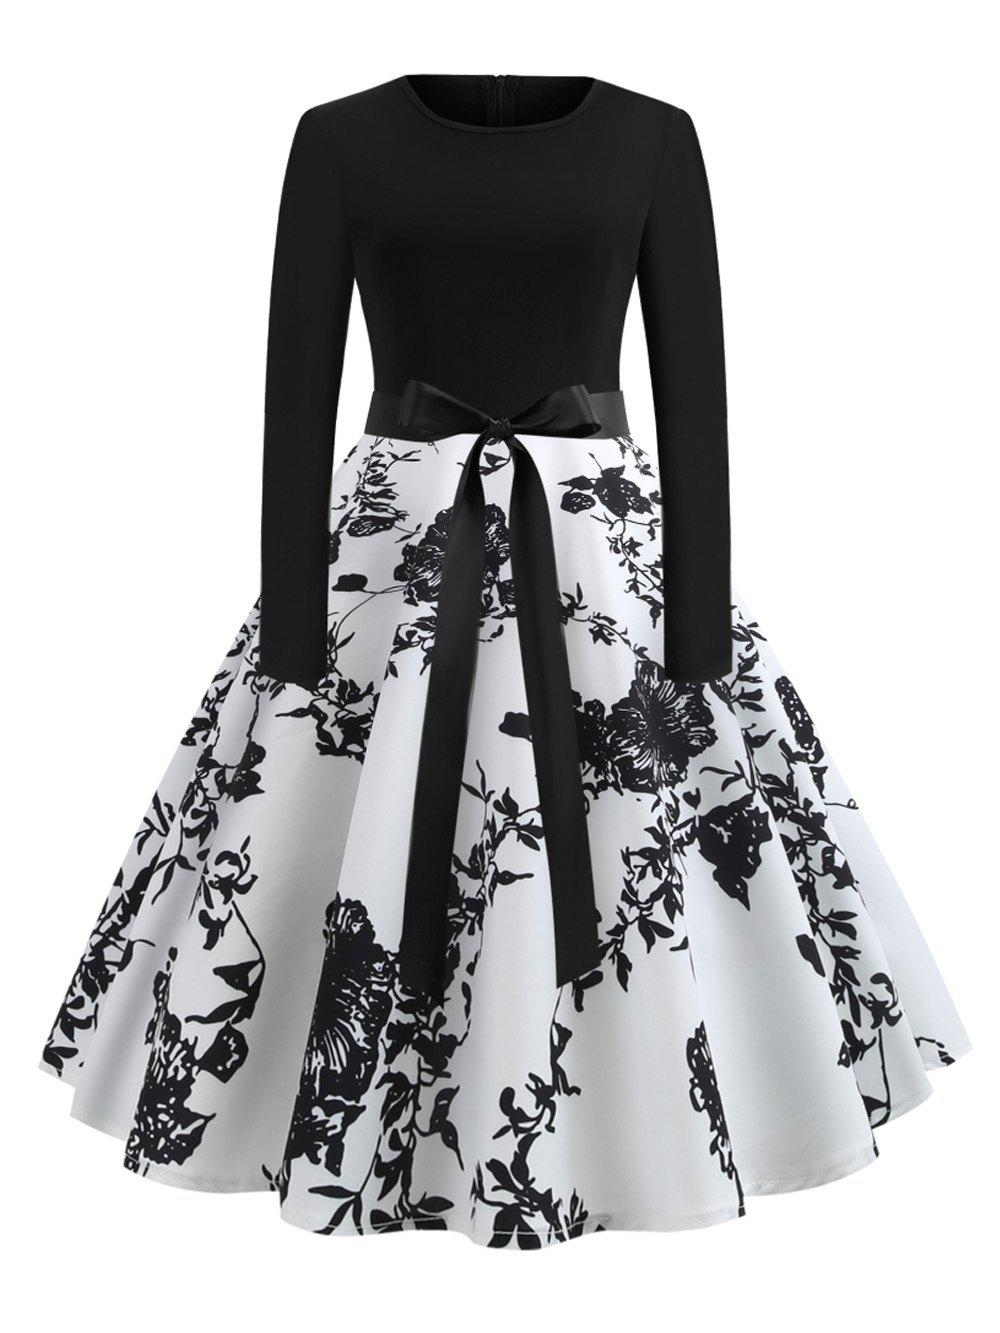 Best Women's Sexy Round Neck Vintage Style Pinup Swing Fashion Printing Evening Party Rockabilly Retro Dress